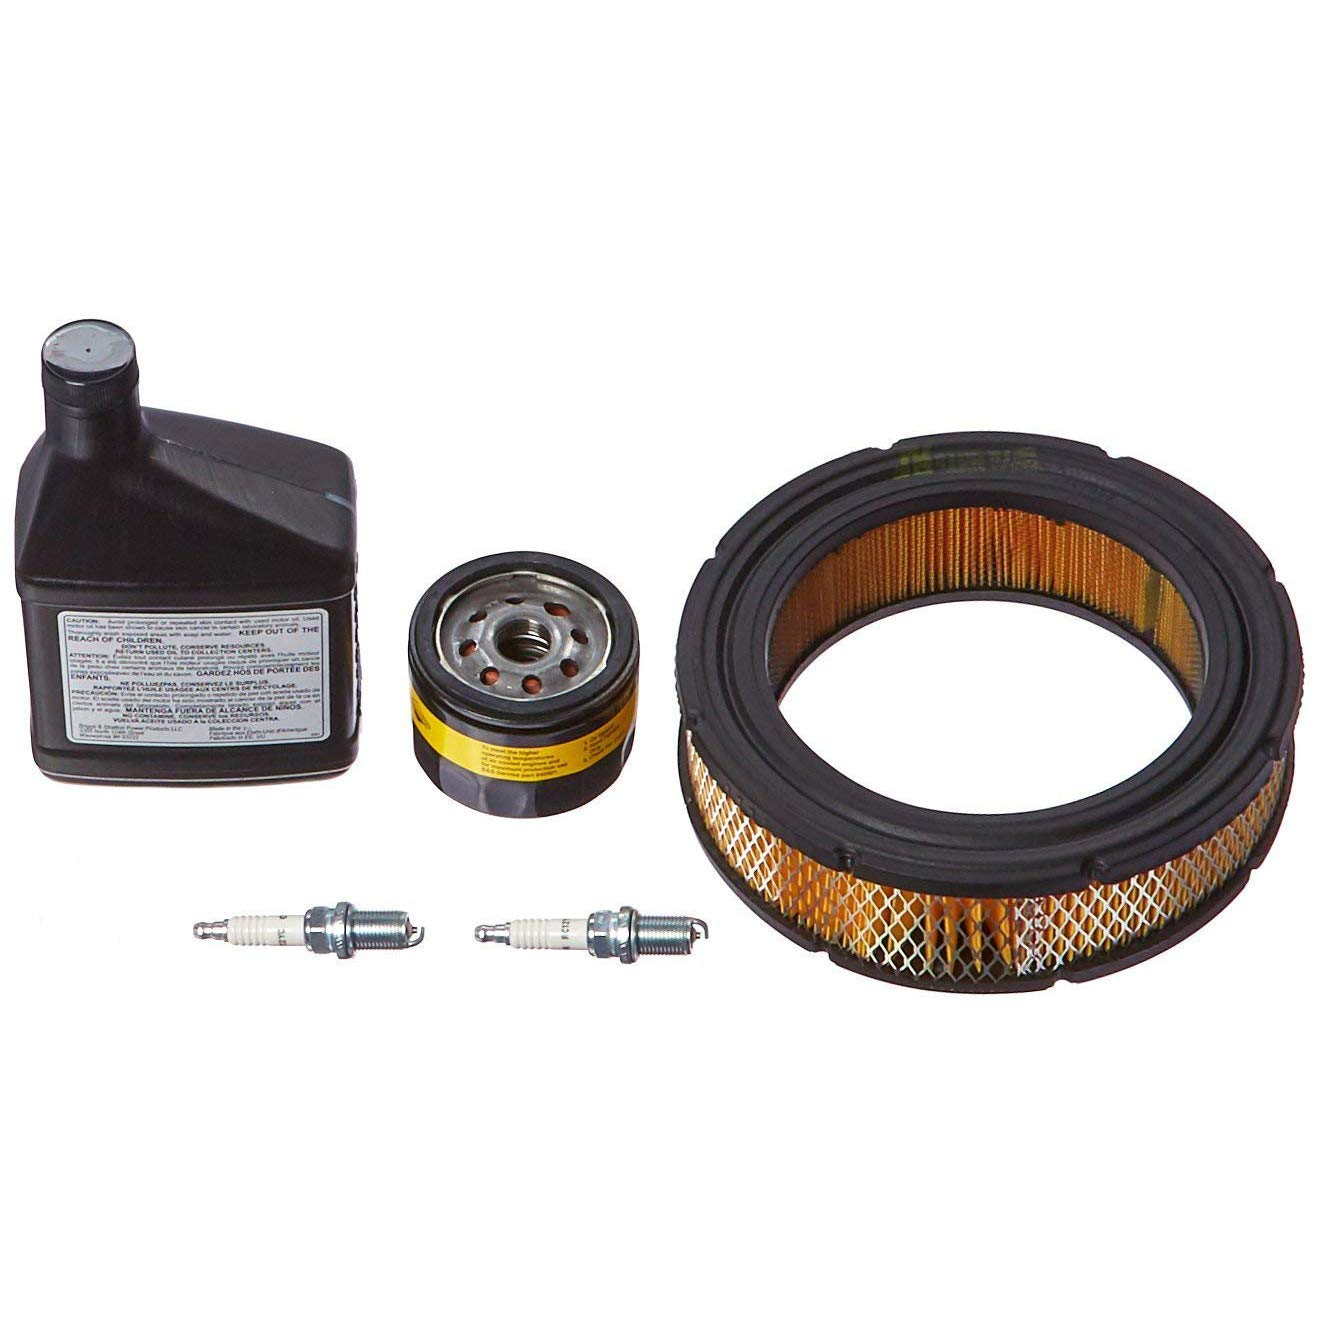 Briggs Stratton 6036 Standby Generator Maintenance Kit, 15,000-20,000 Watt Empower Generators